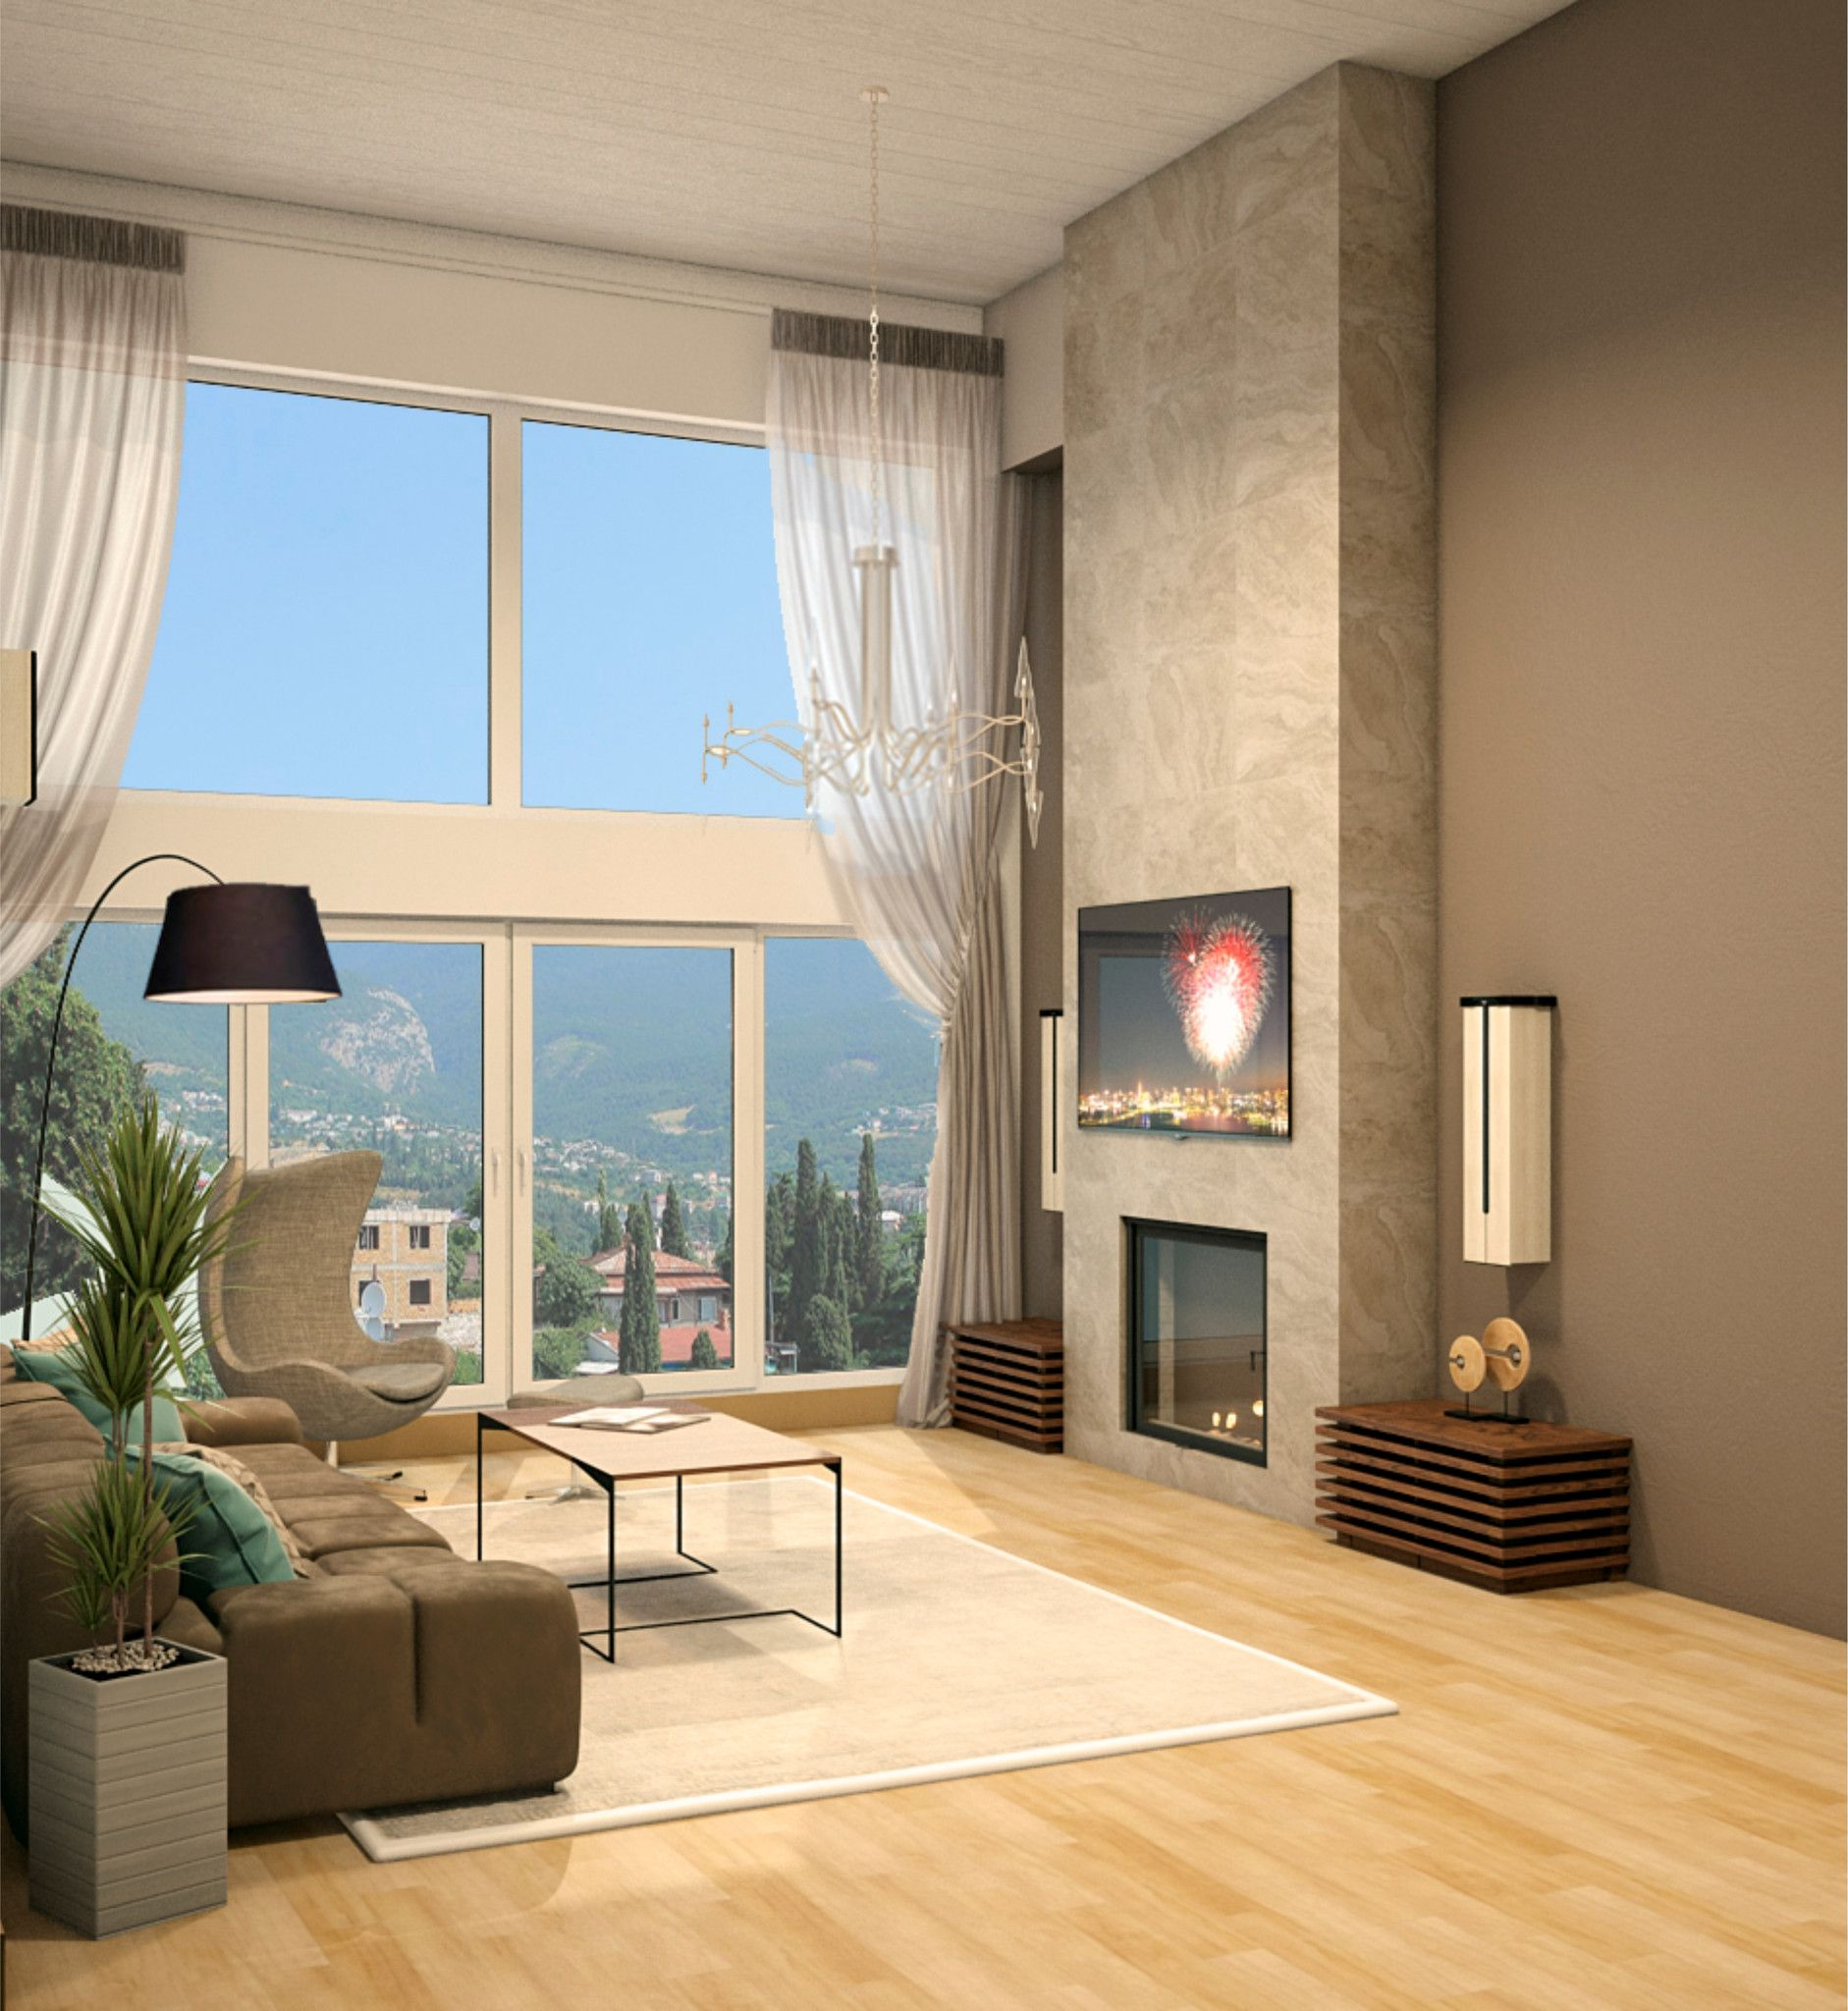 Design A Living Room Online Thinking Of Shopping Emfurn But Not Sure How Your Room Will Appear